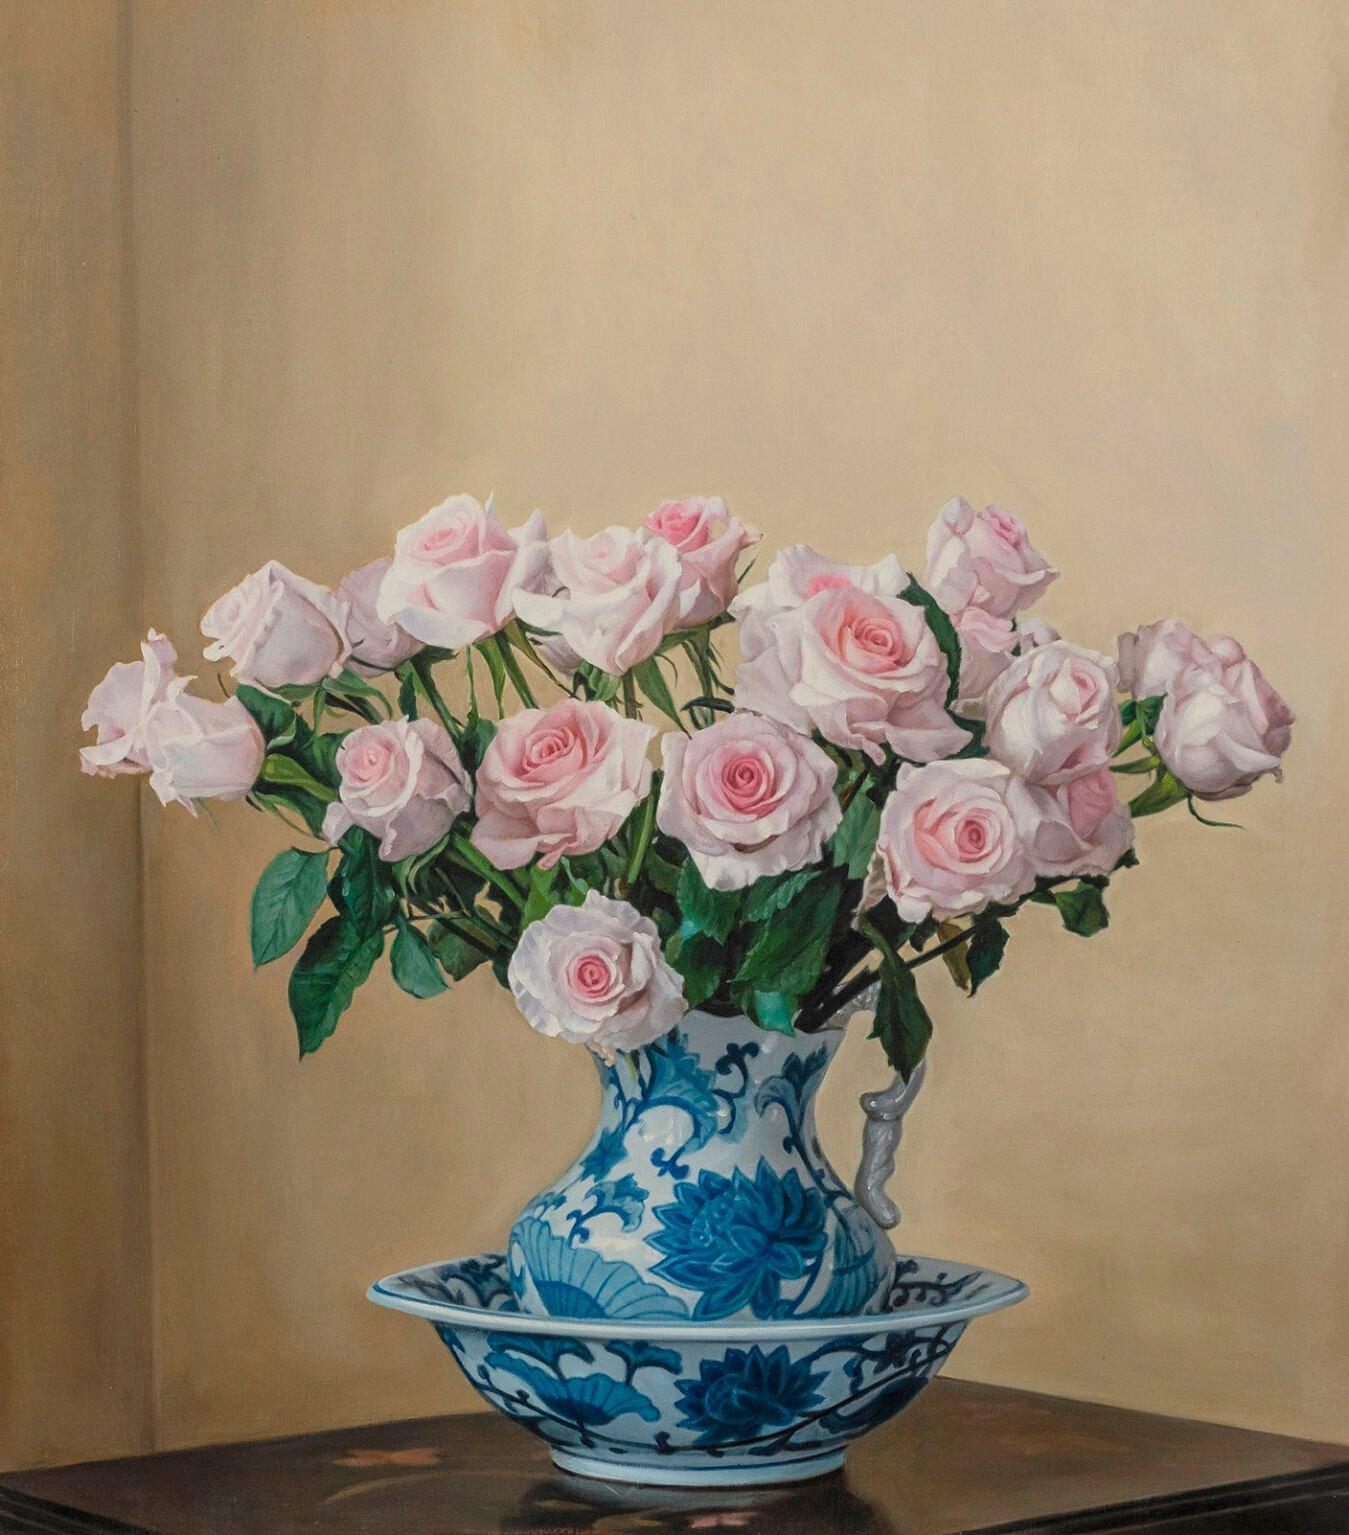 Oil painting of flowers in blue and white vase